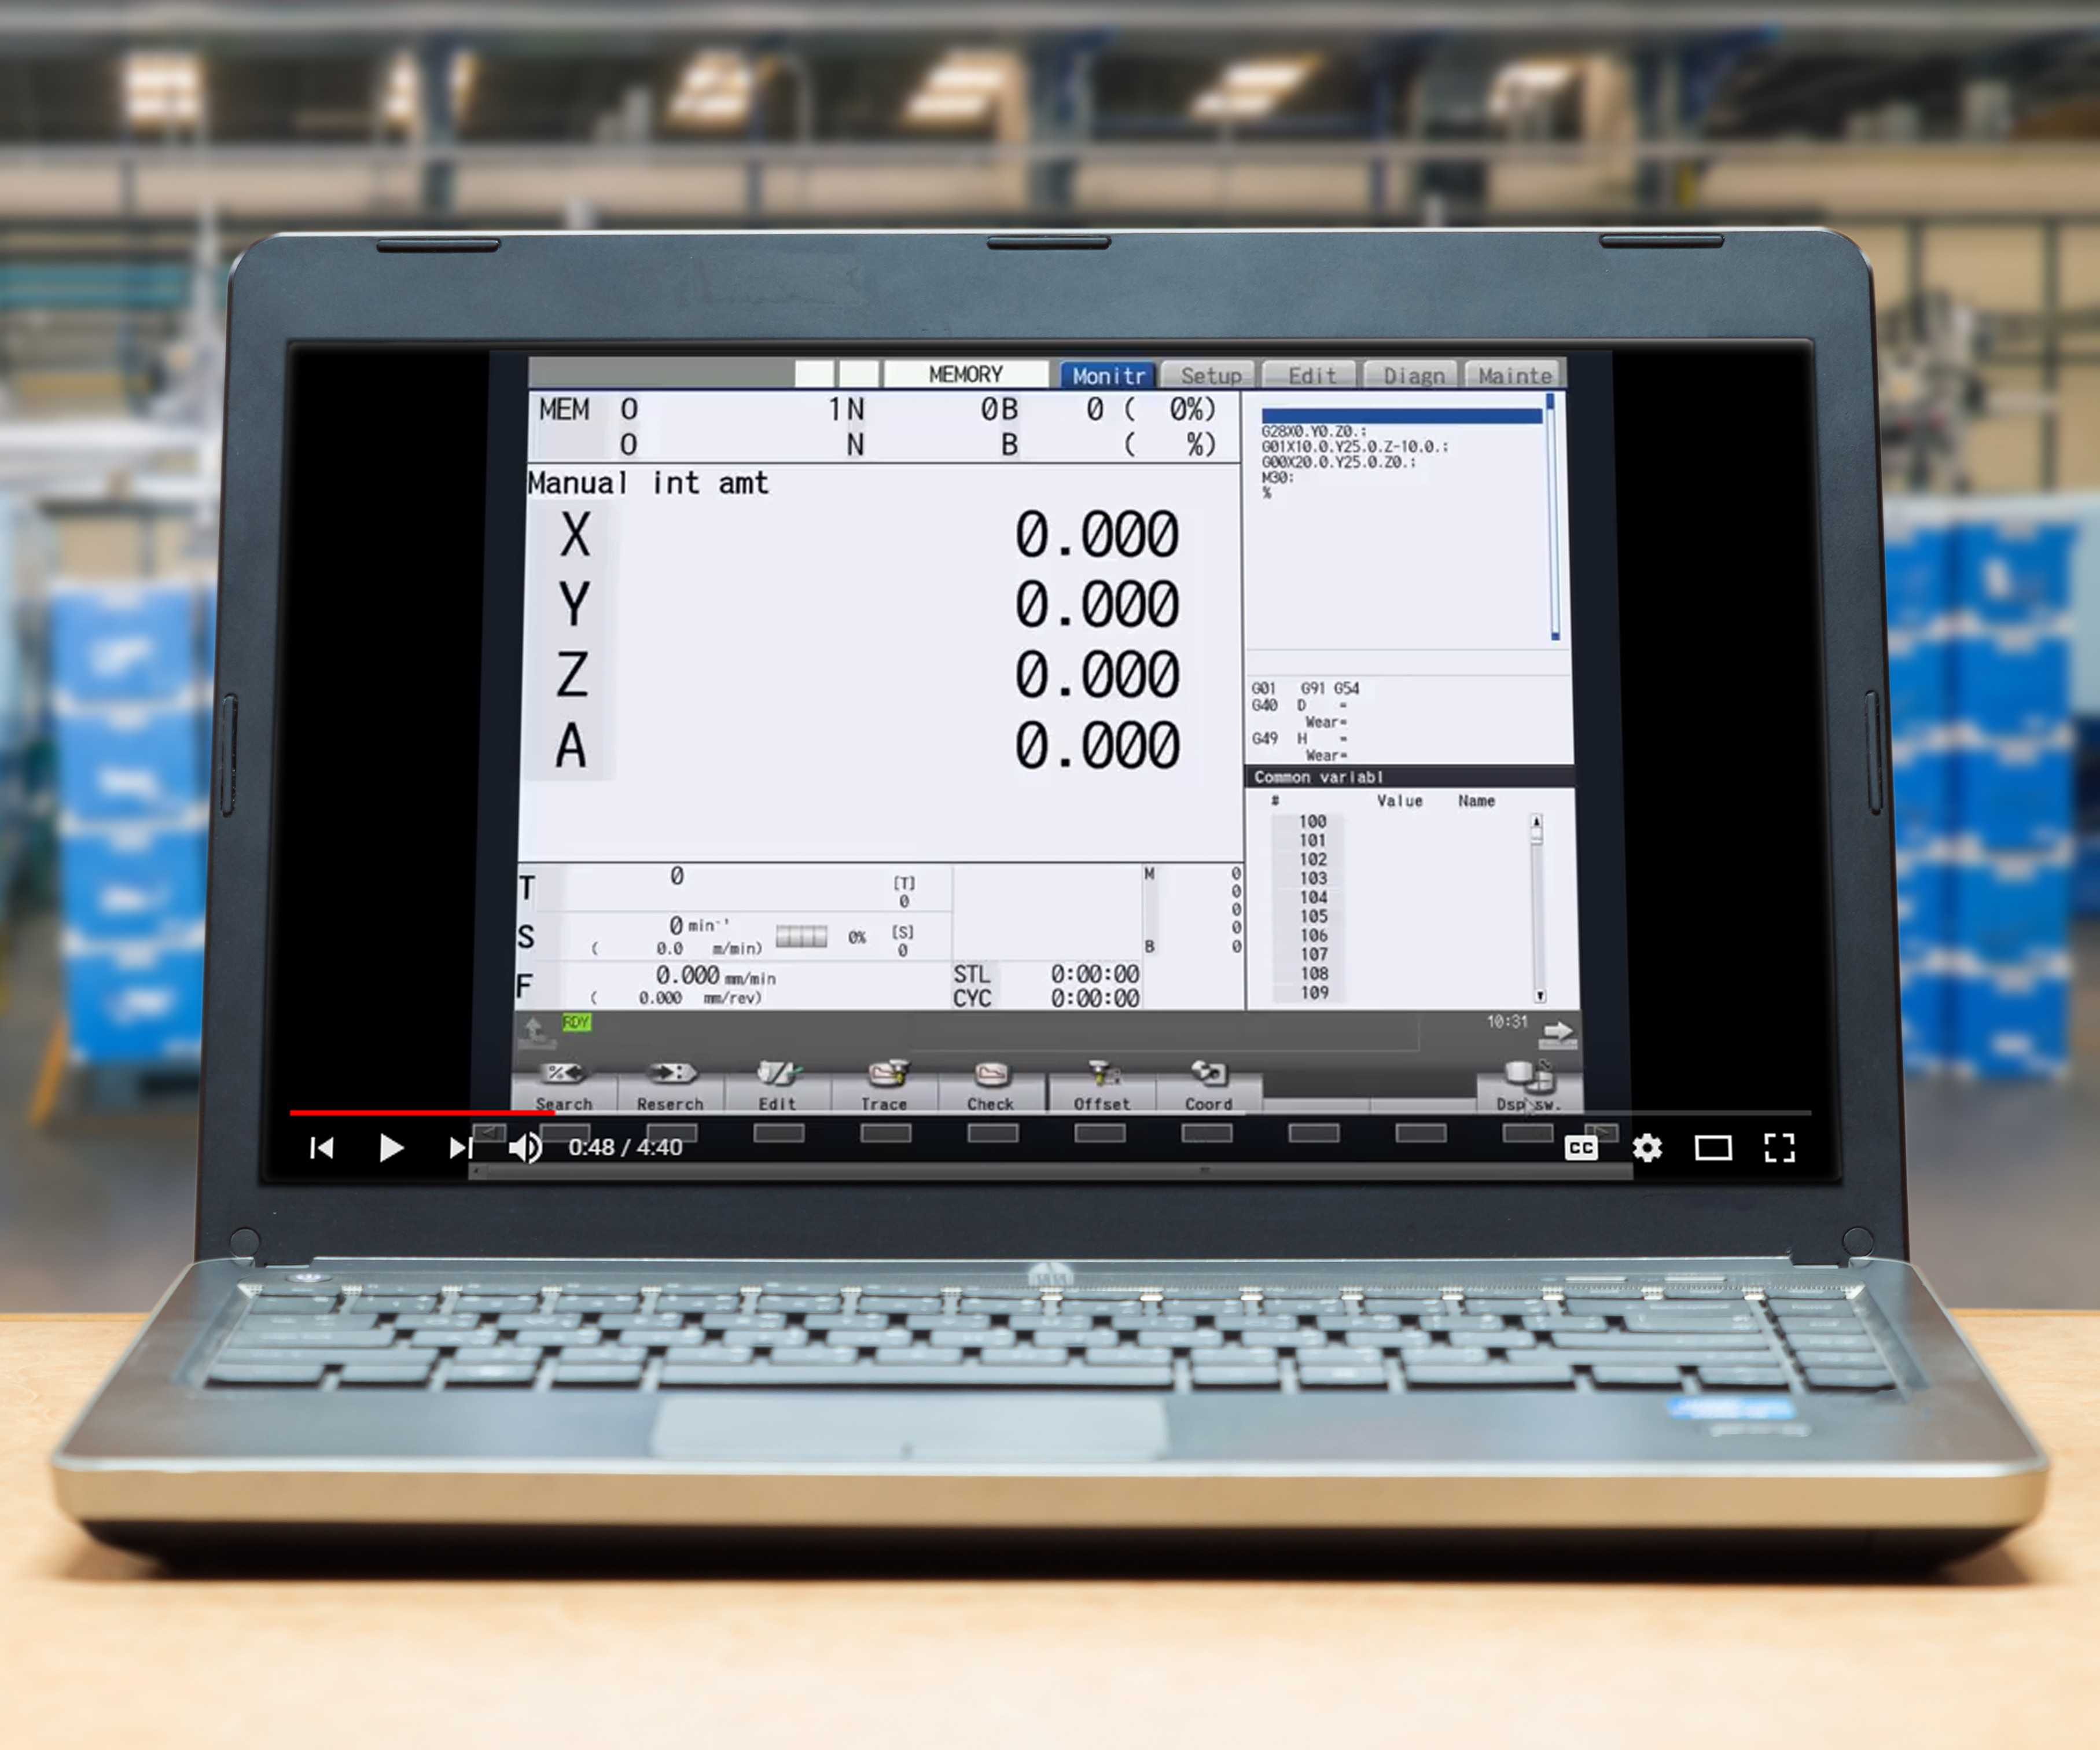 cnc quick pro tips video on a laptop